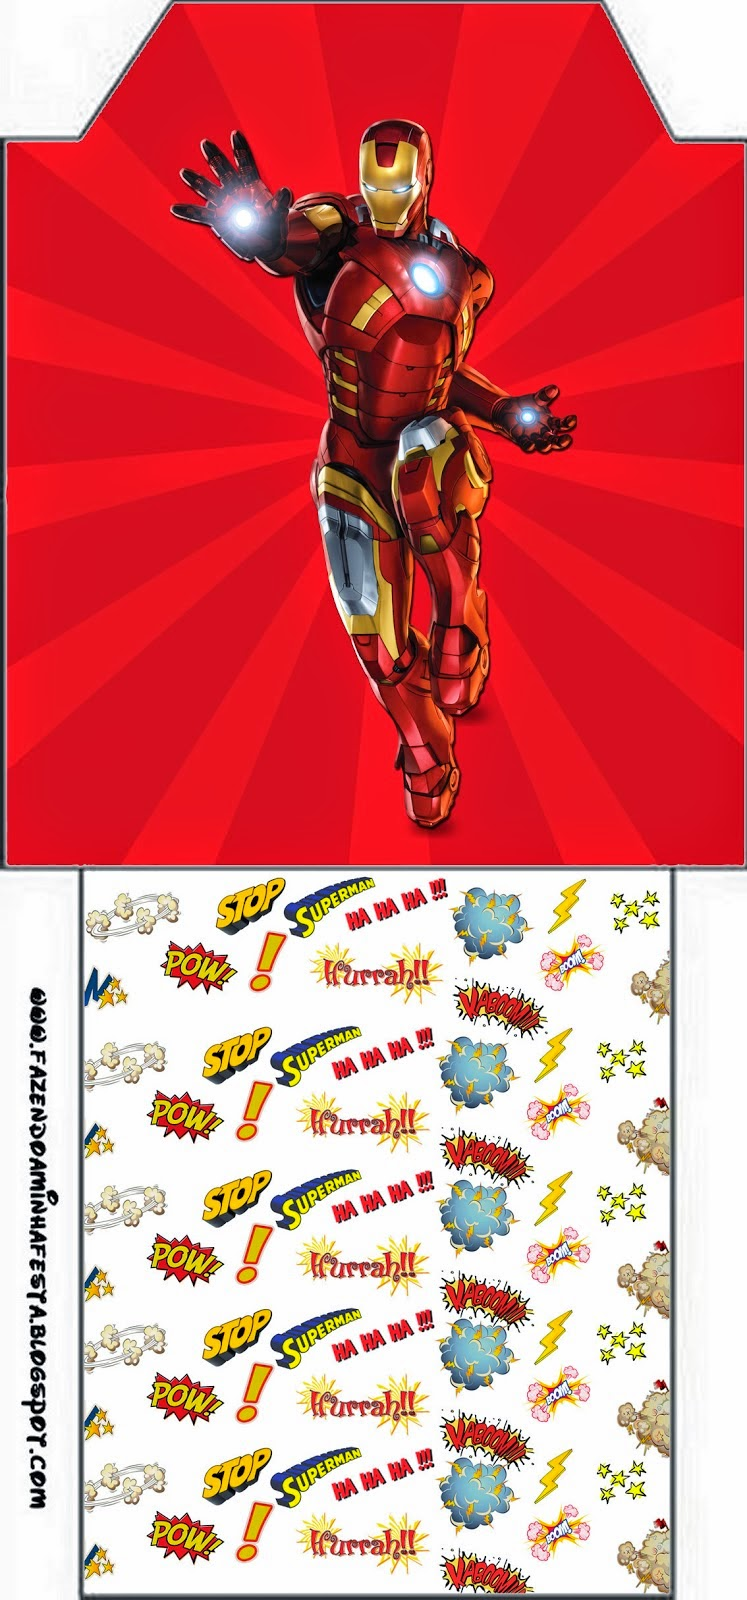 graphic regarding Iron Man Printable named Iron Guy: Free of charge Social gathering Printables. - Oh My Fiesta! for Geeks